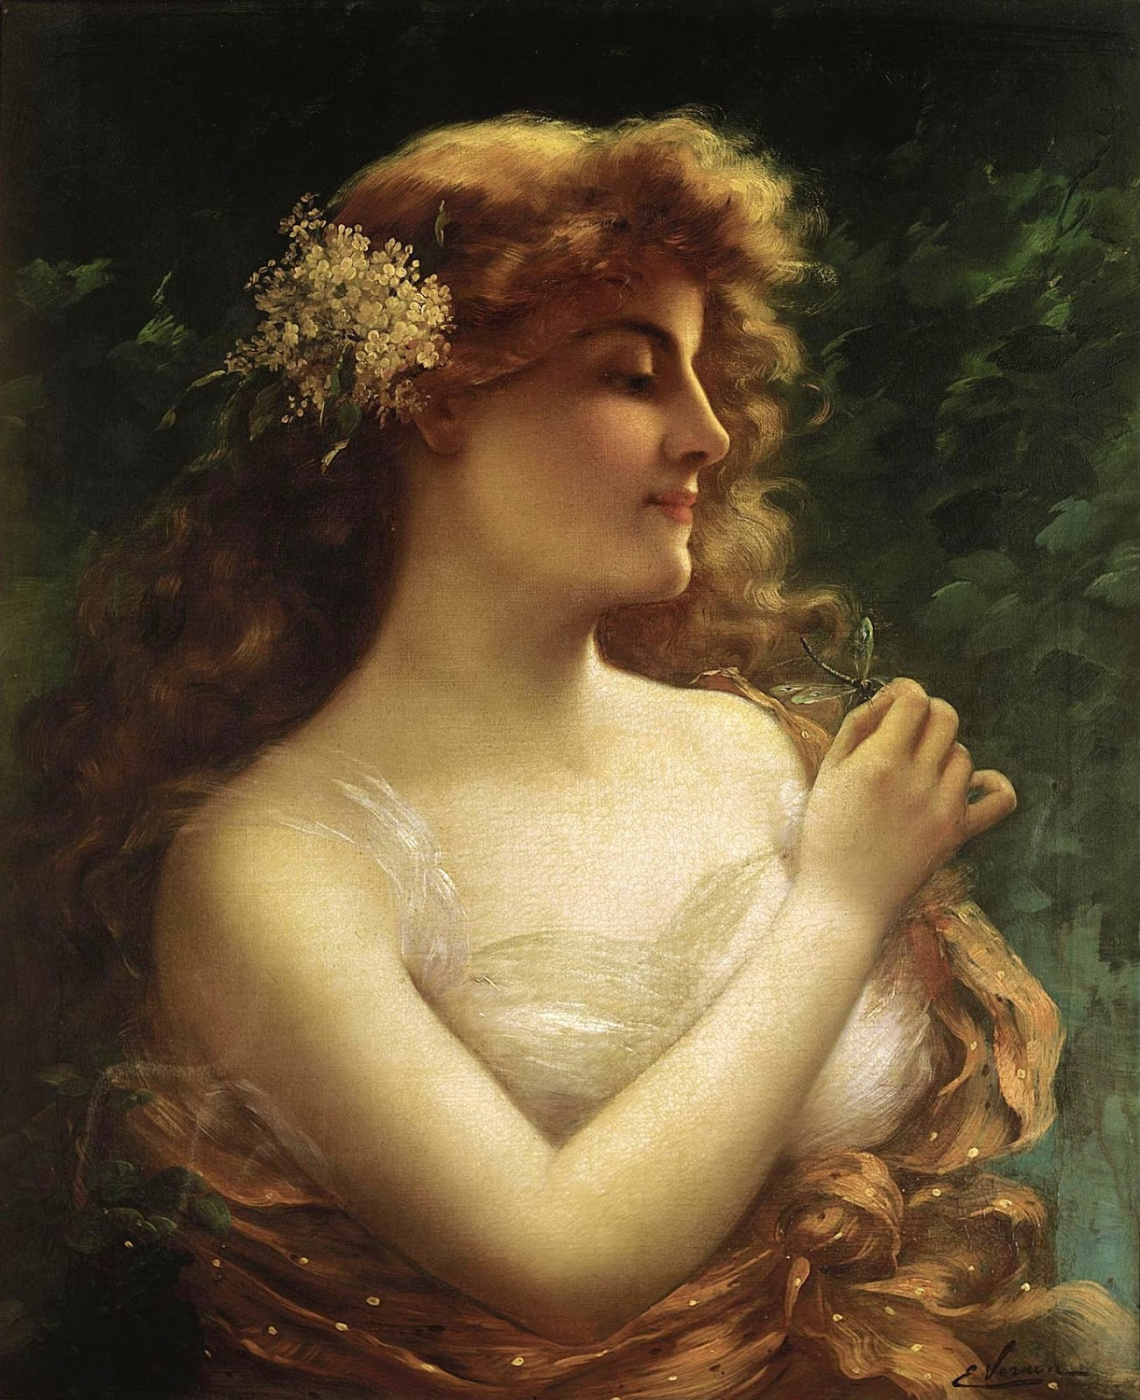 Emile Vernon. Dragonfly. Private collection